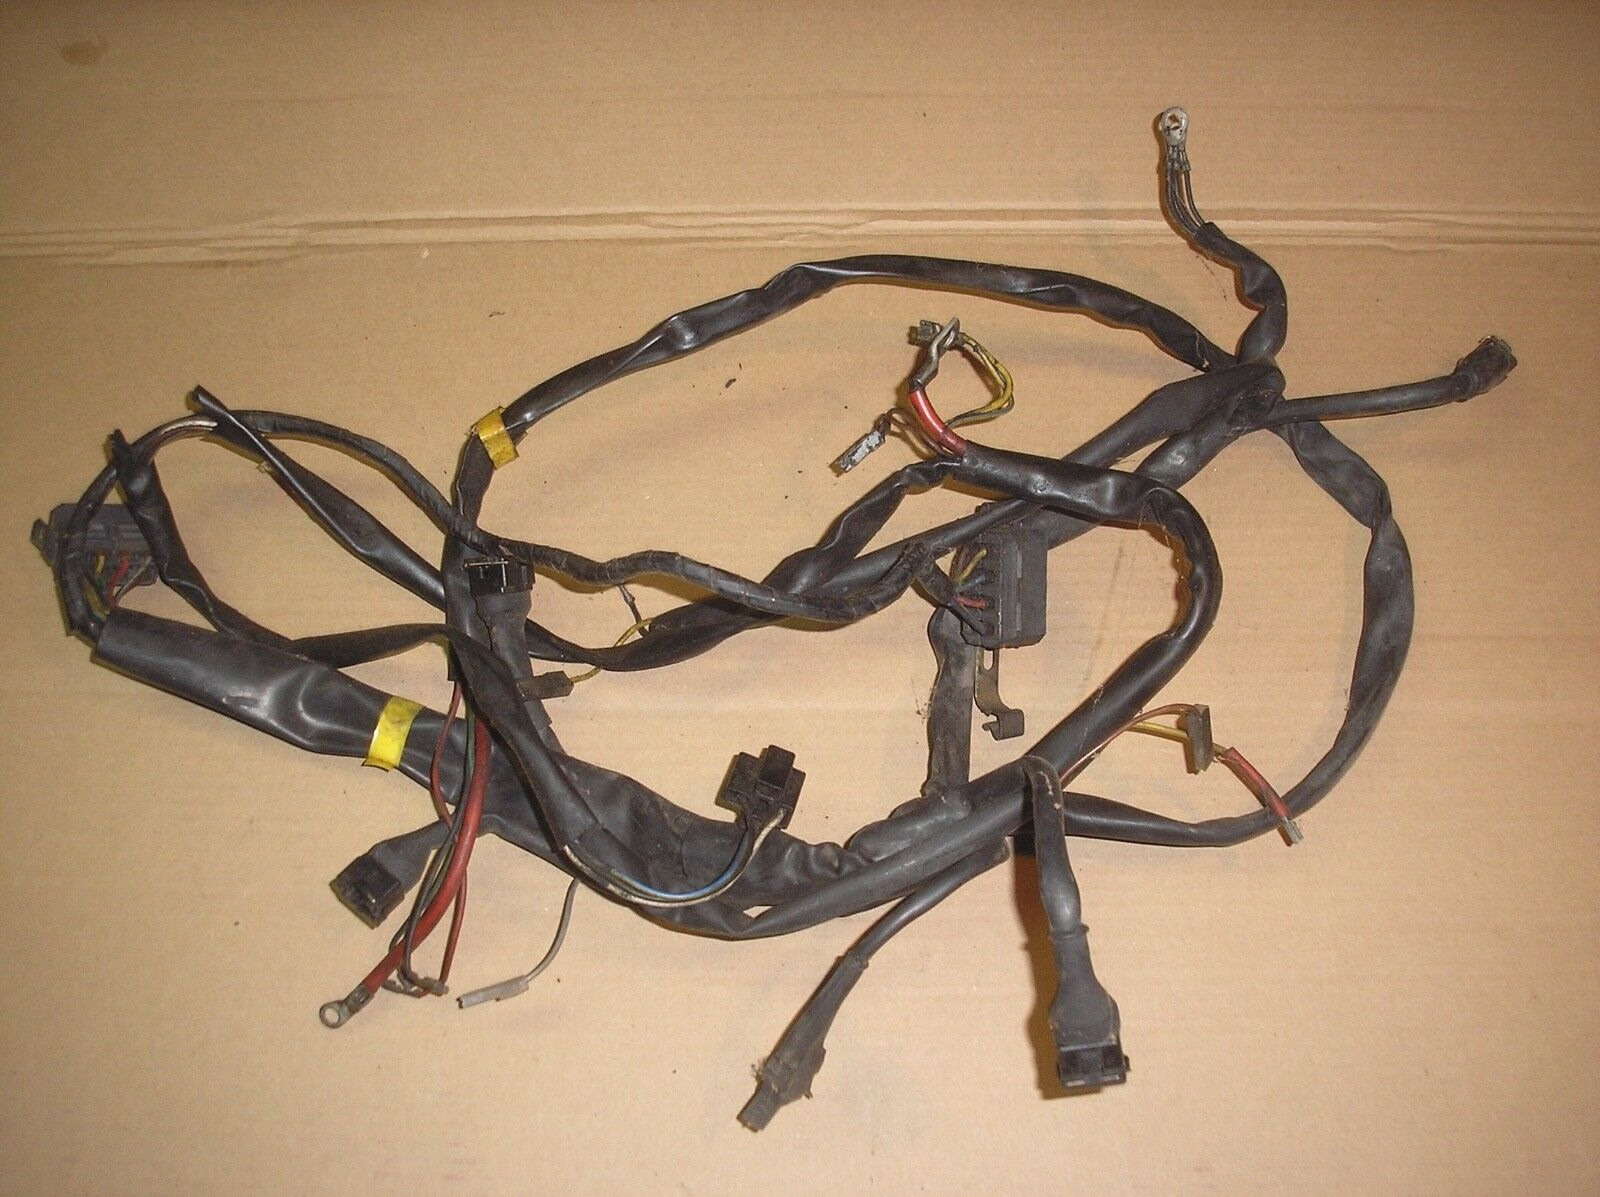 Used Volvo Auto Parts And Components For Sale Page 9 Wiring Harness 240 B21ft Turbo Engine Loom 1981 1985 242 244 245 Rare Oe